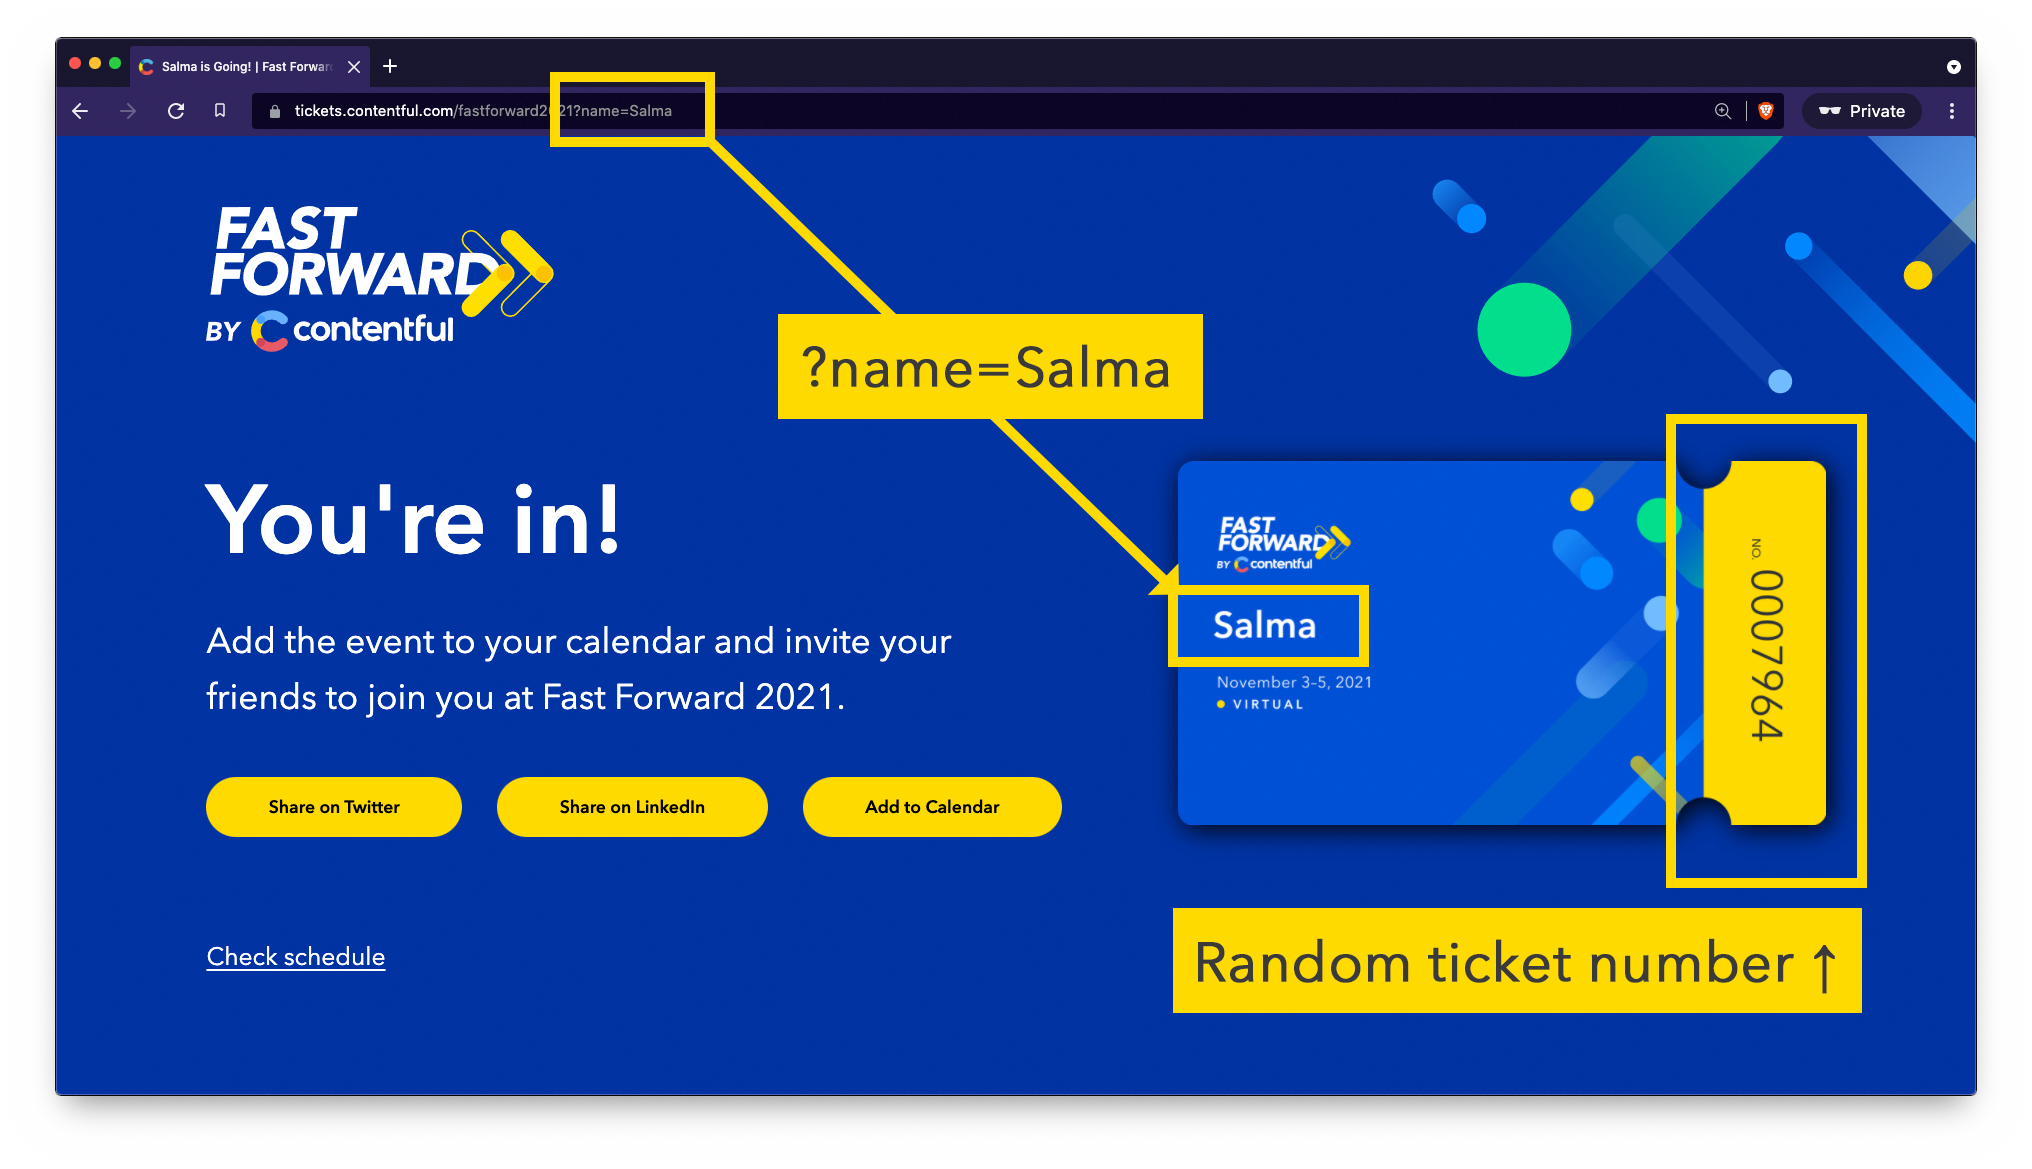 A screenshot of the Fast Forward ticket app, showing how the parameters from the URL translate to the content on the page. You can see that the name parameter from the URL is embedded onto the image of the ticket, and the random ticket number is also highlighted at the right of the ticket.